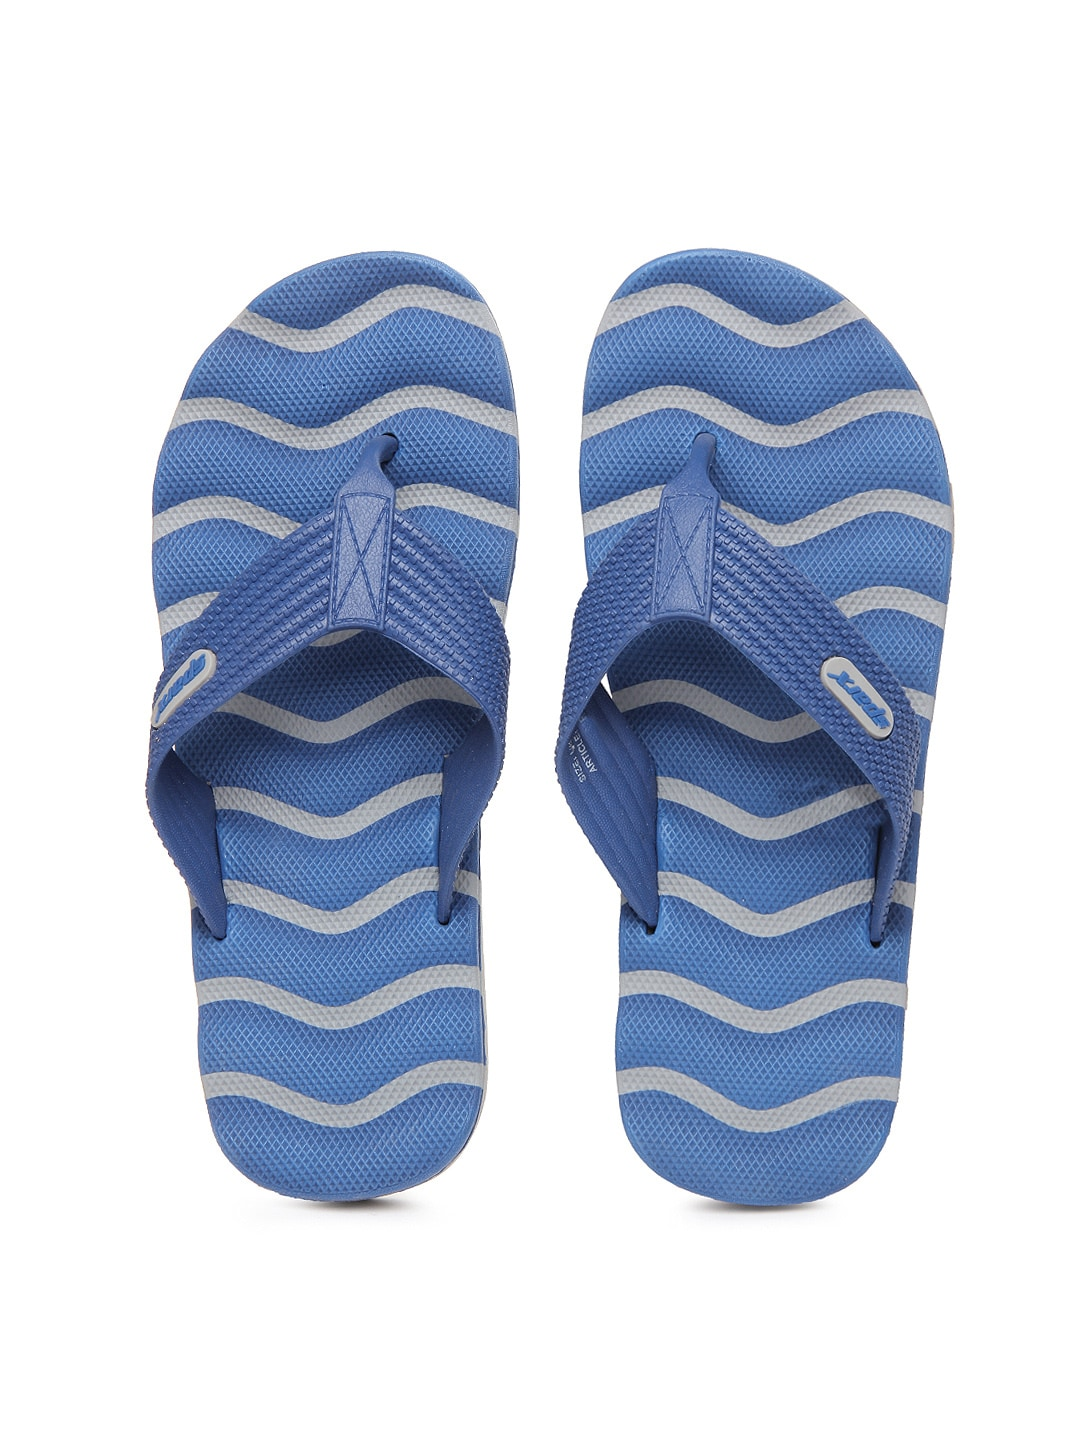 Sparx Sparx Men Blue & Grey Flip Flops (Multicolor)